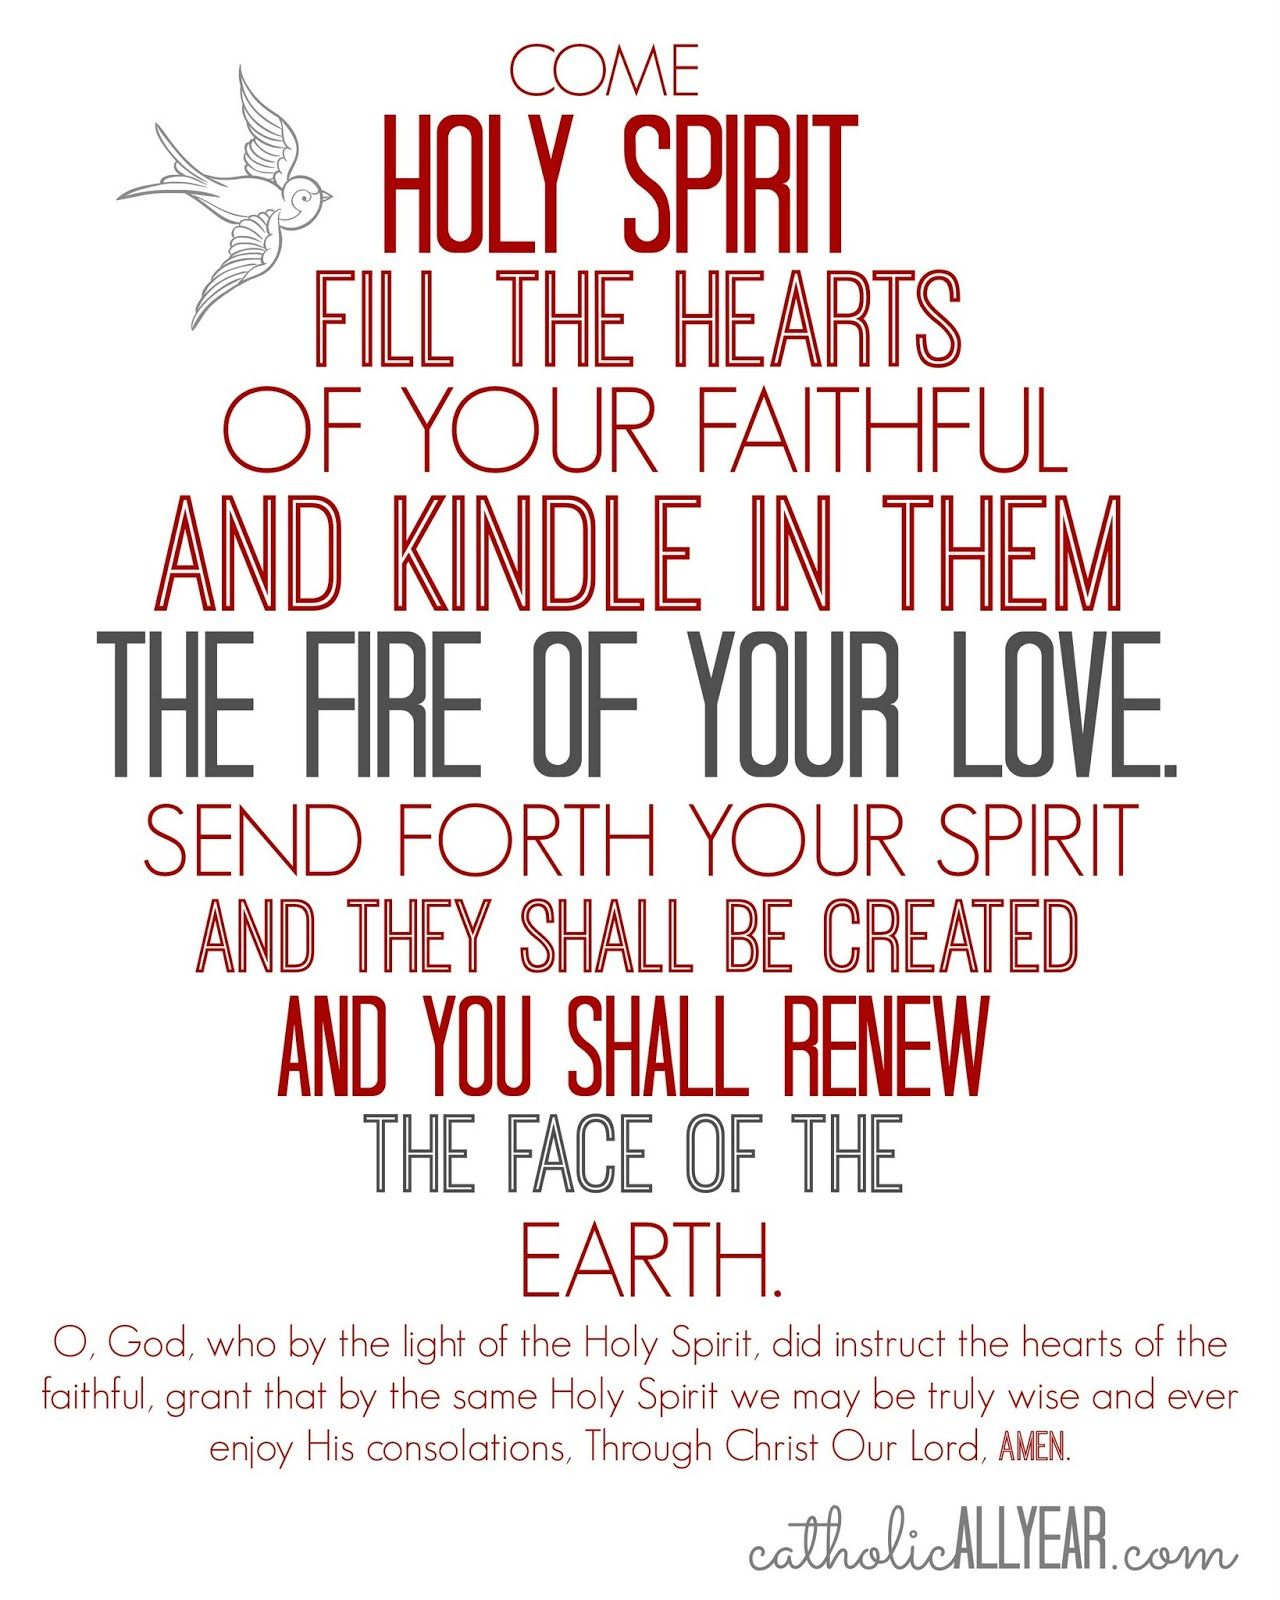 Come Holy Spirit prayer. Catholic All Year: Pentecost is Coming:  Celebration Ideas and Free Printables